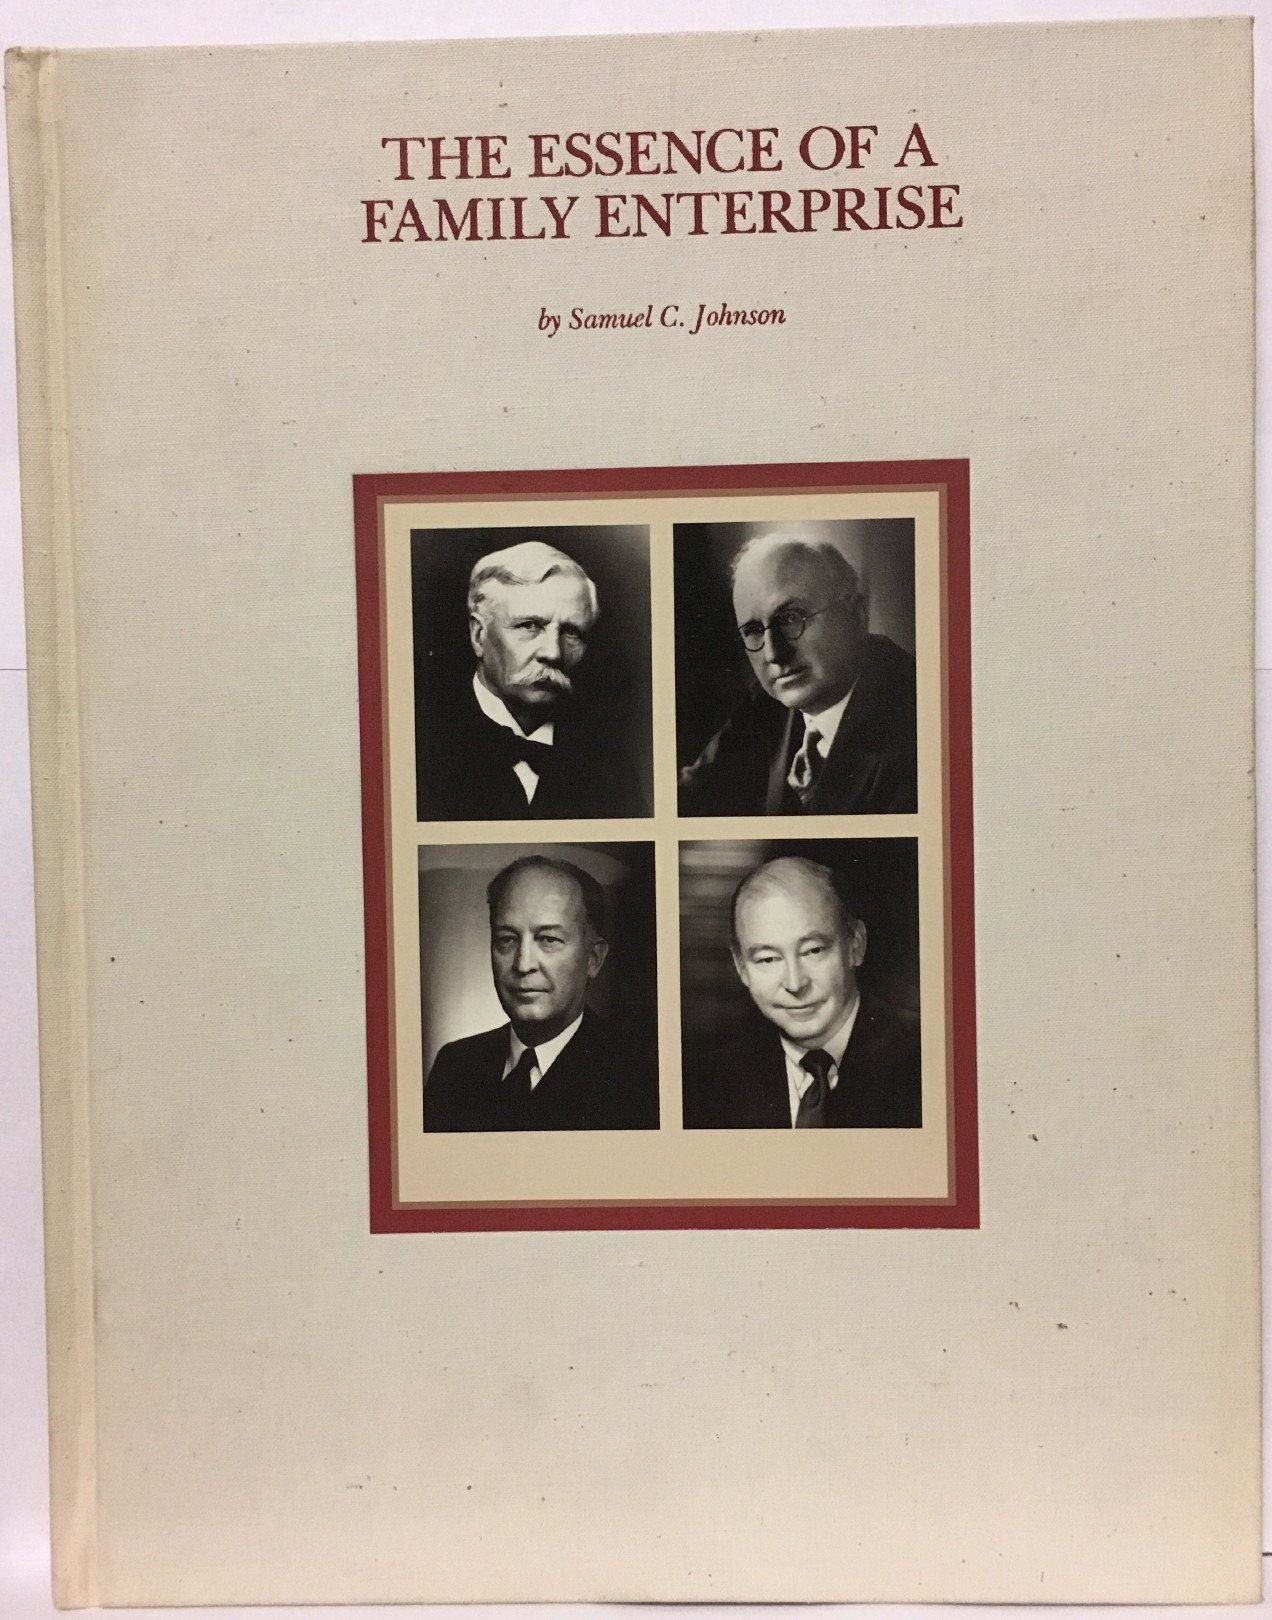 the essence of a family enterprise doing business the johnson way